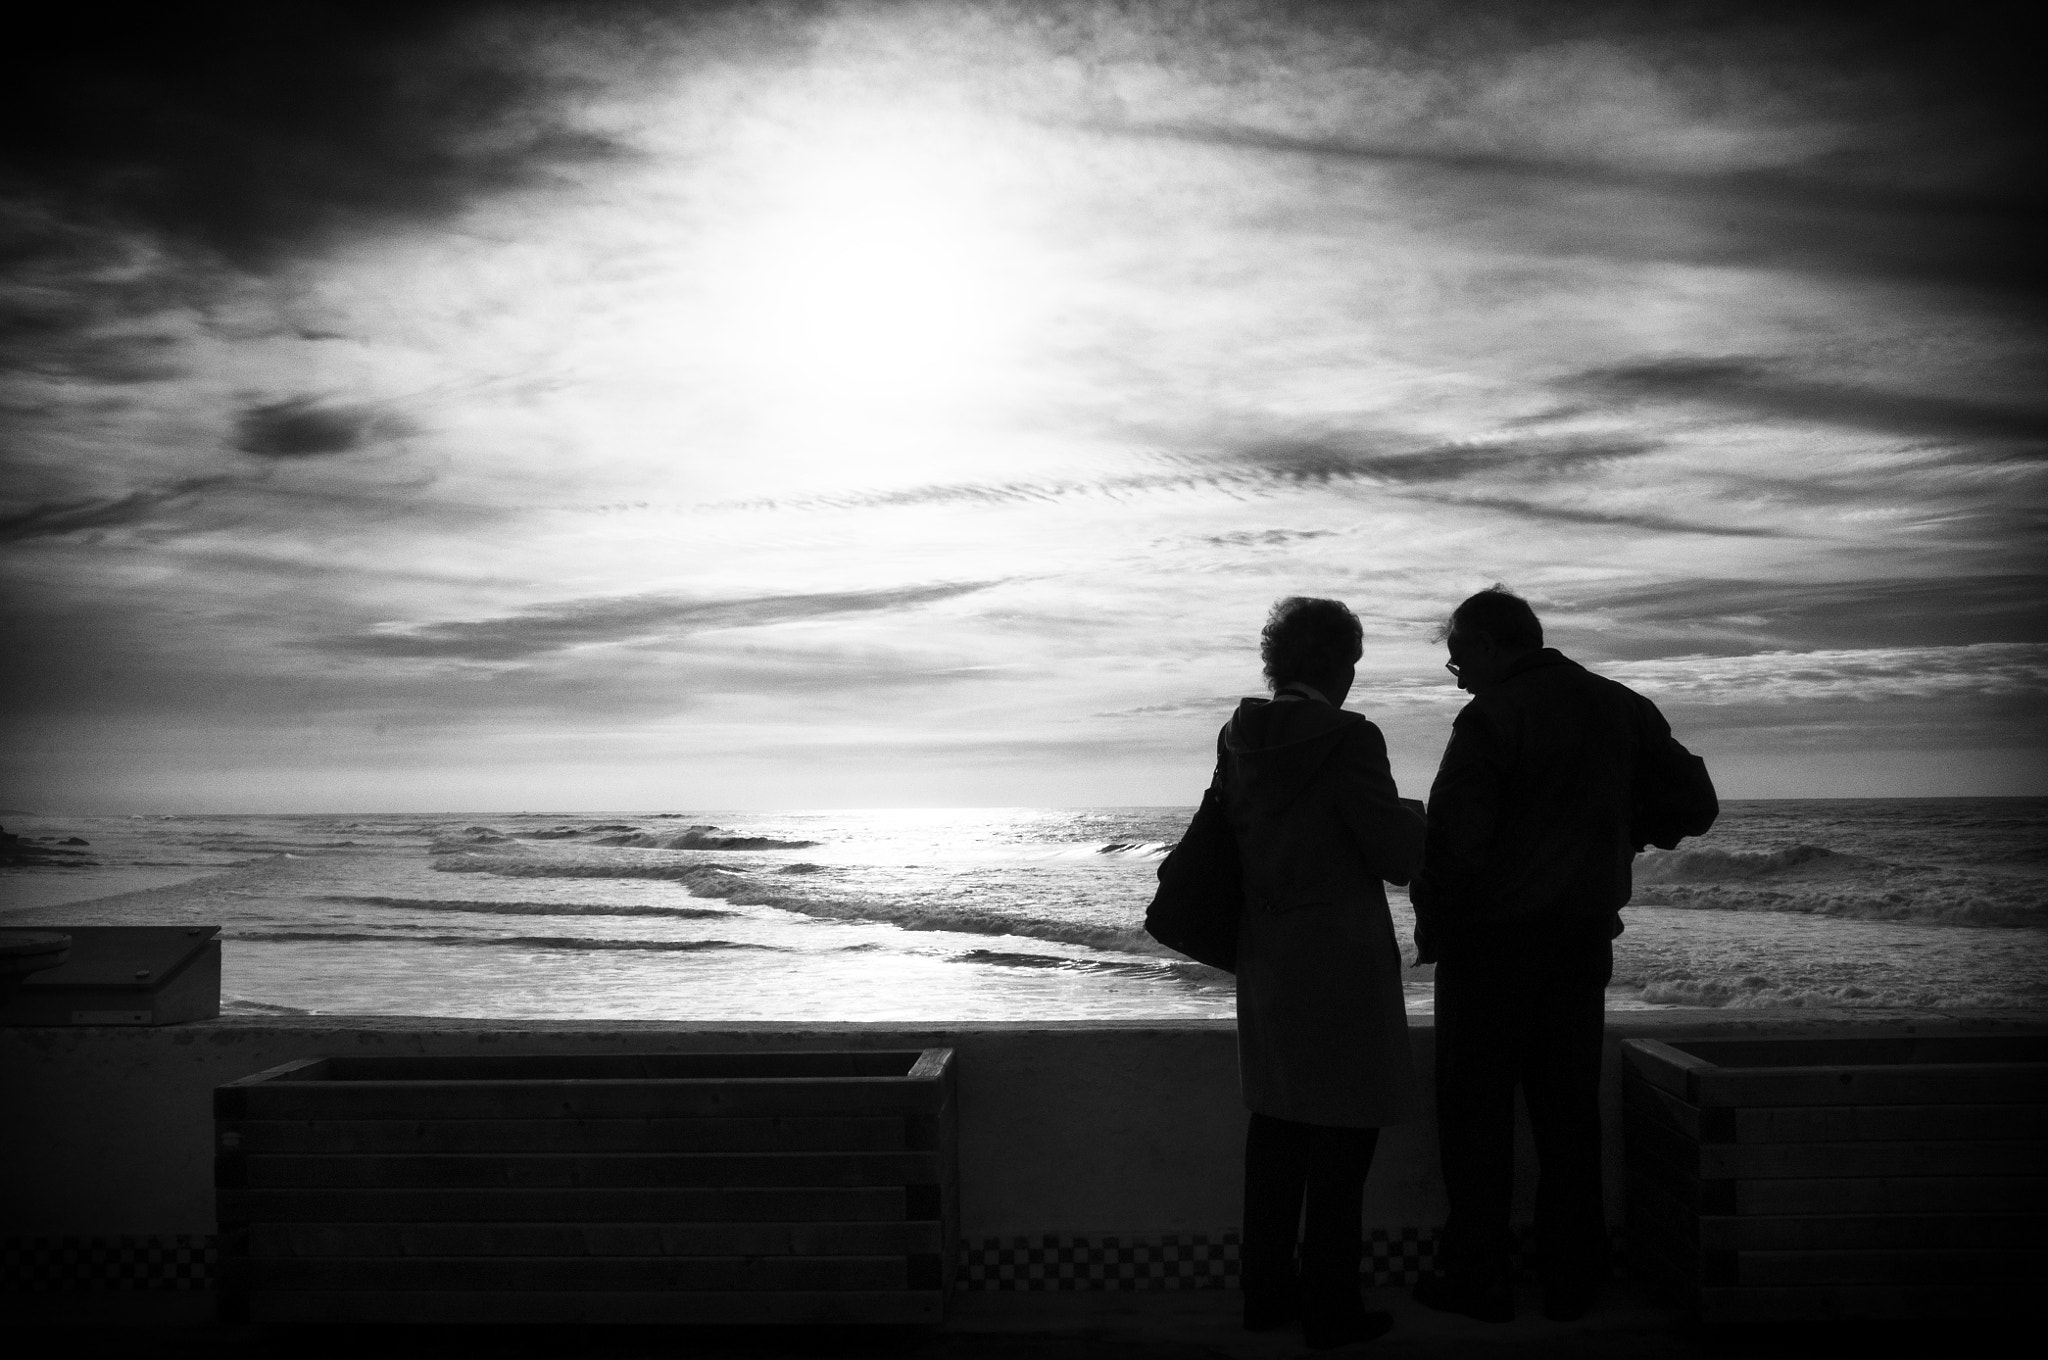 Photograph Complicity by Rúben Almeida on 500px